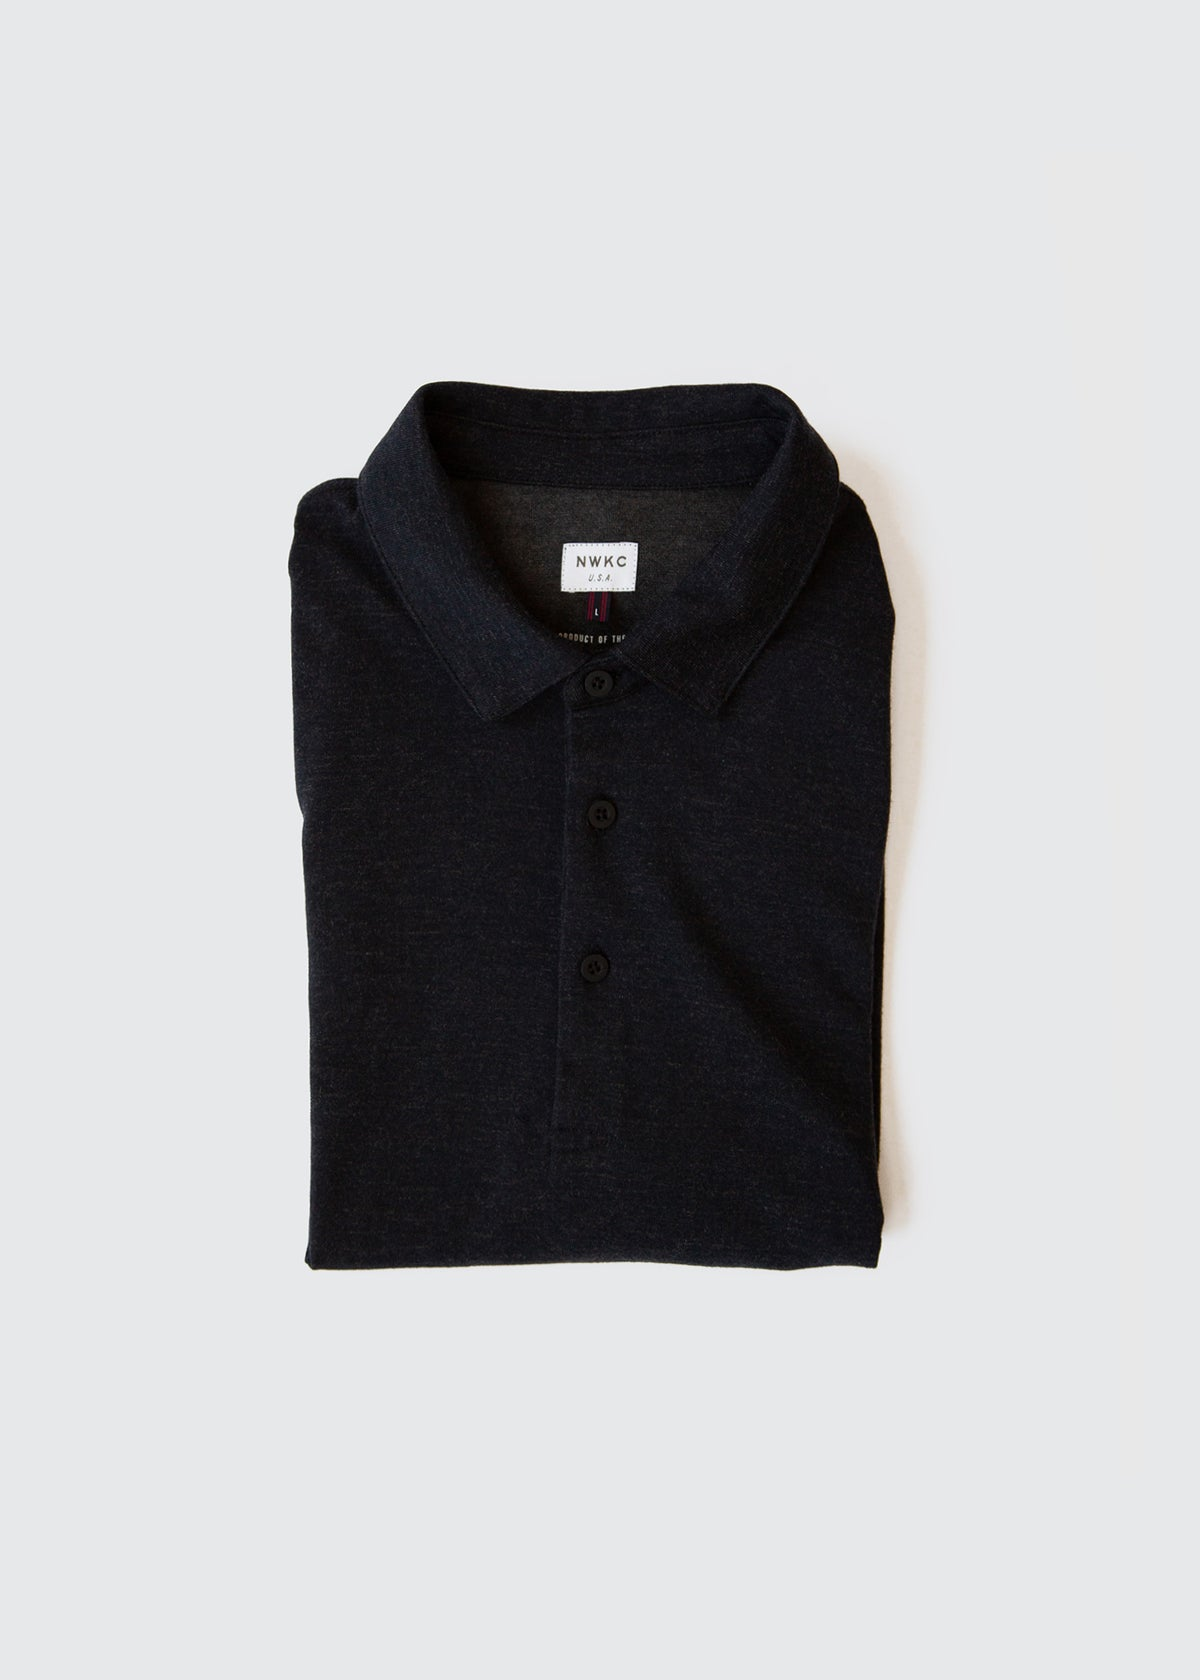 103 - SS POLO - NAVY - Wilson & Willy's - MPLS Neighbor Goods